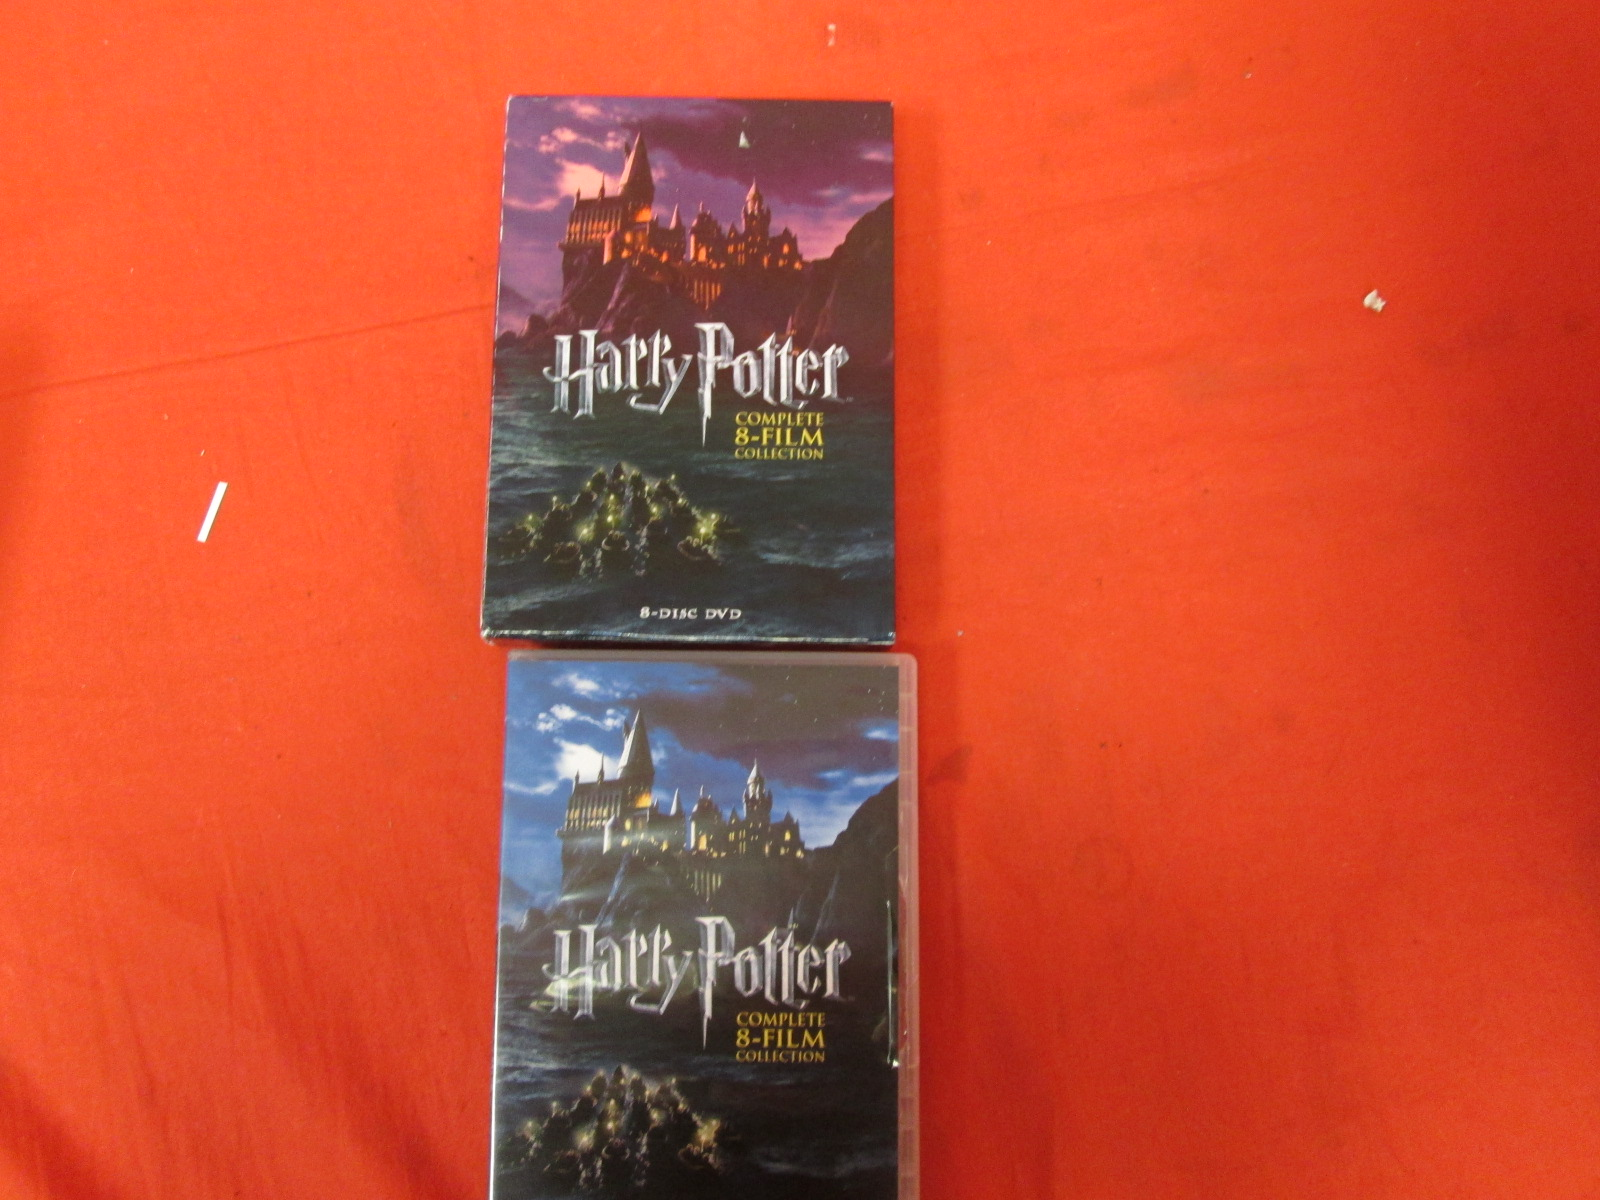 Harry Potter: The Complete 8-FILM Collection On DVD With Daniel